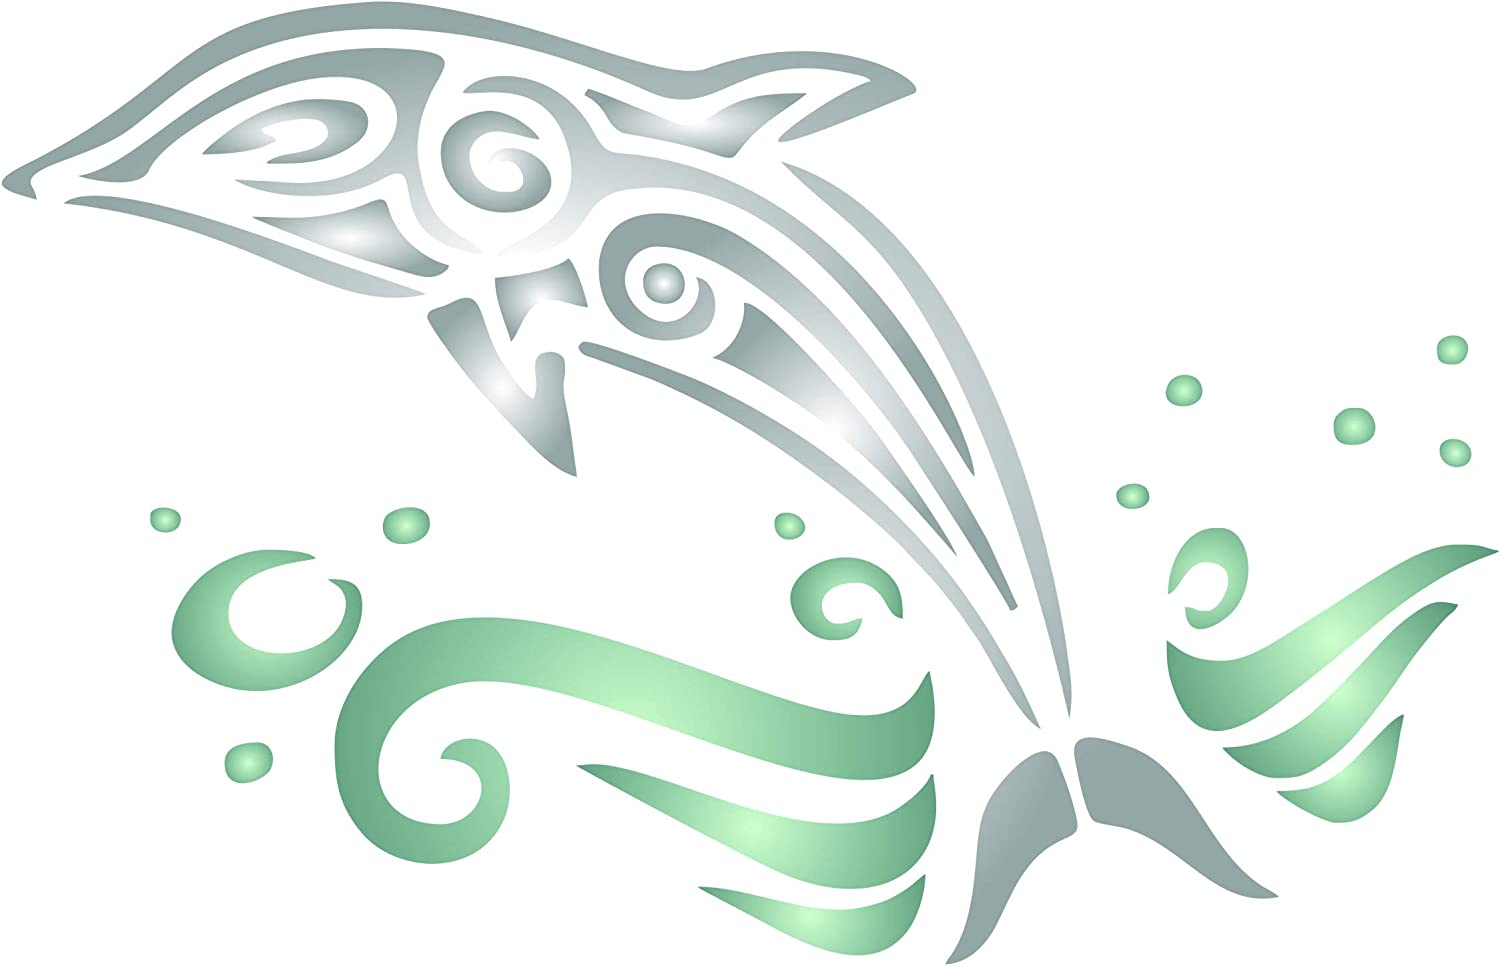 Dolphin Stencil, 7 x 4.5 inch (S) - Animal Fish Sea Whale Wall Stencils for Painting Template